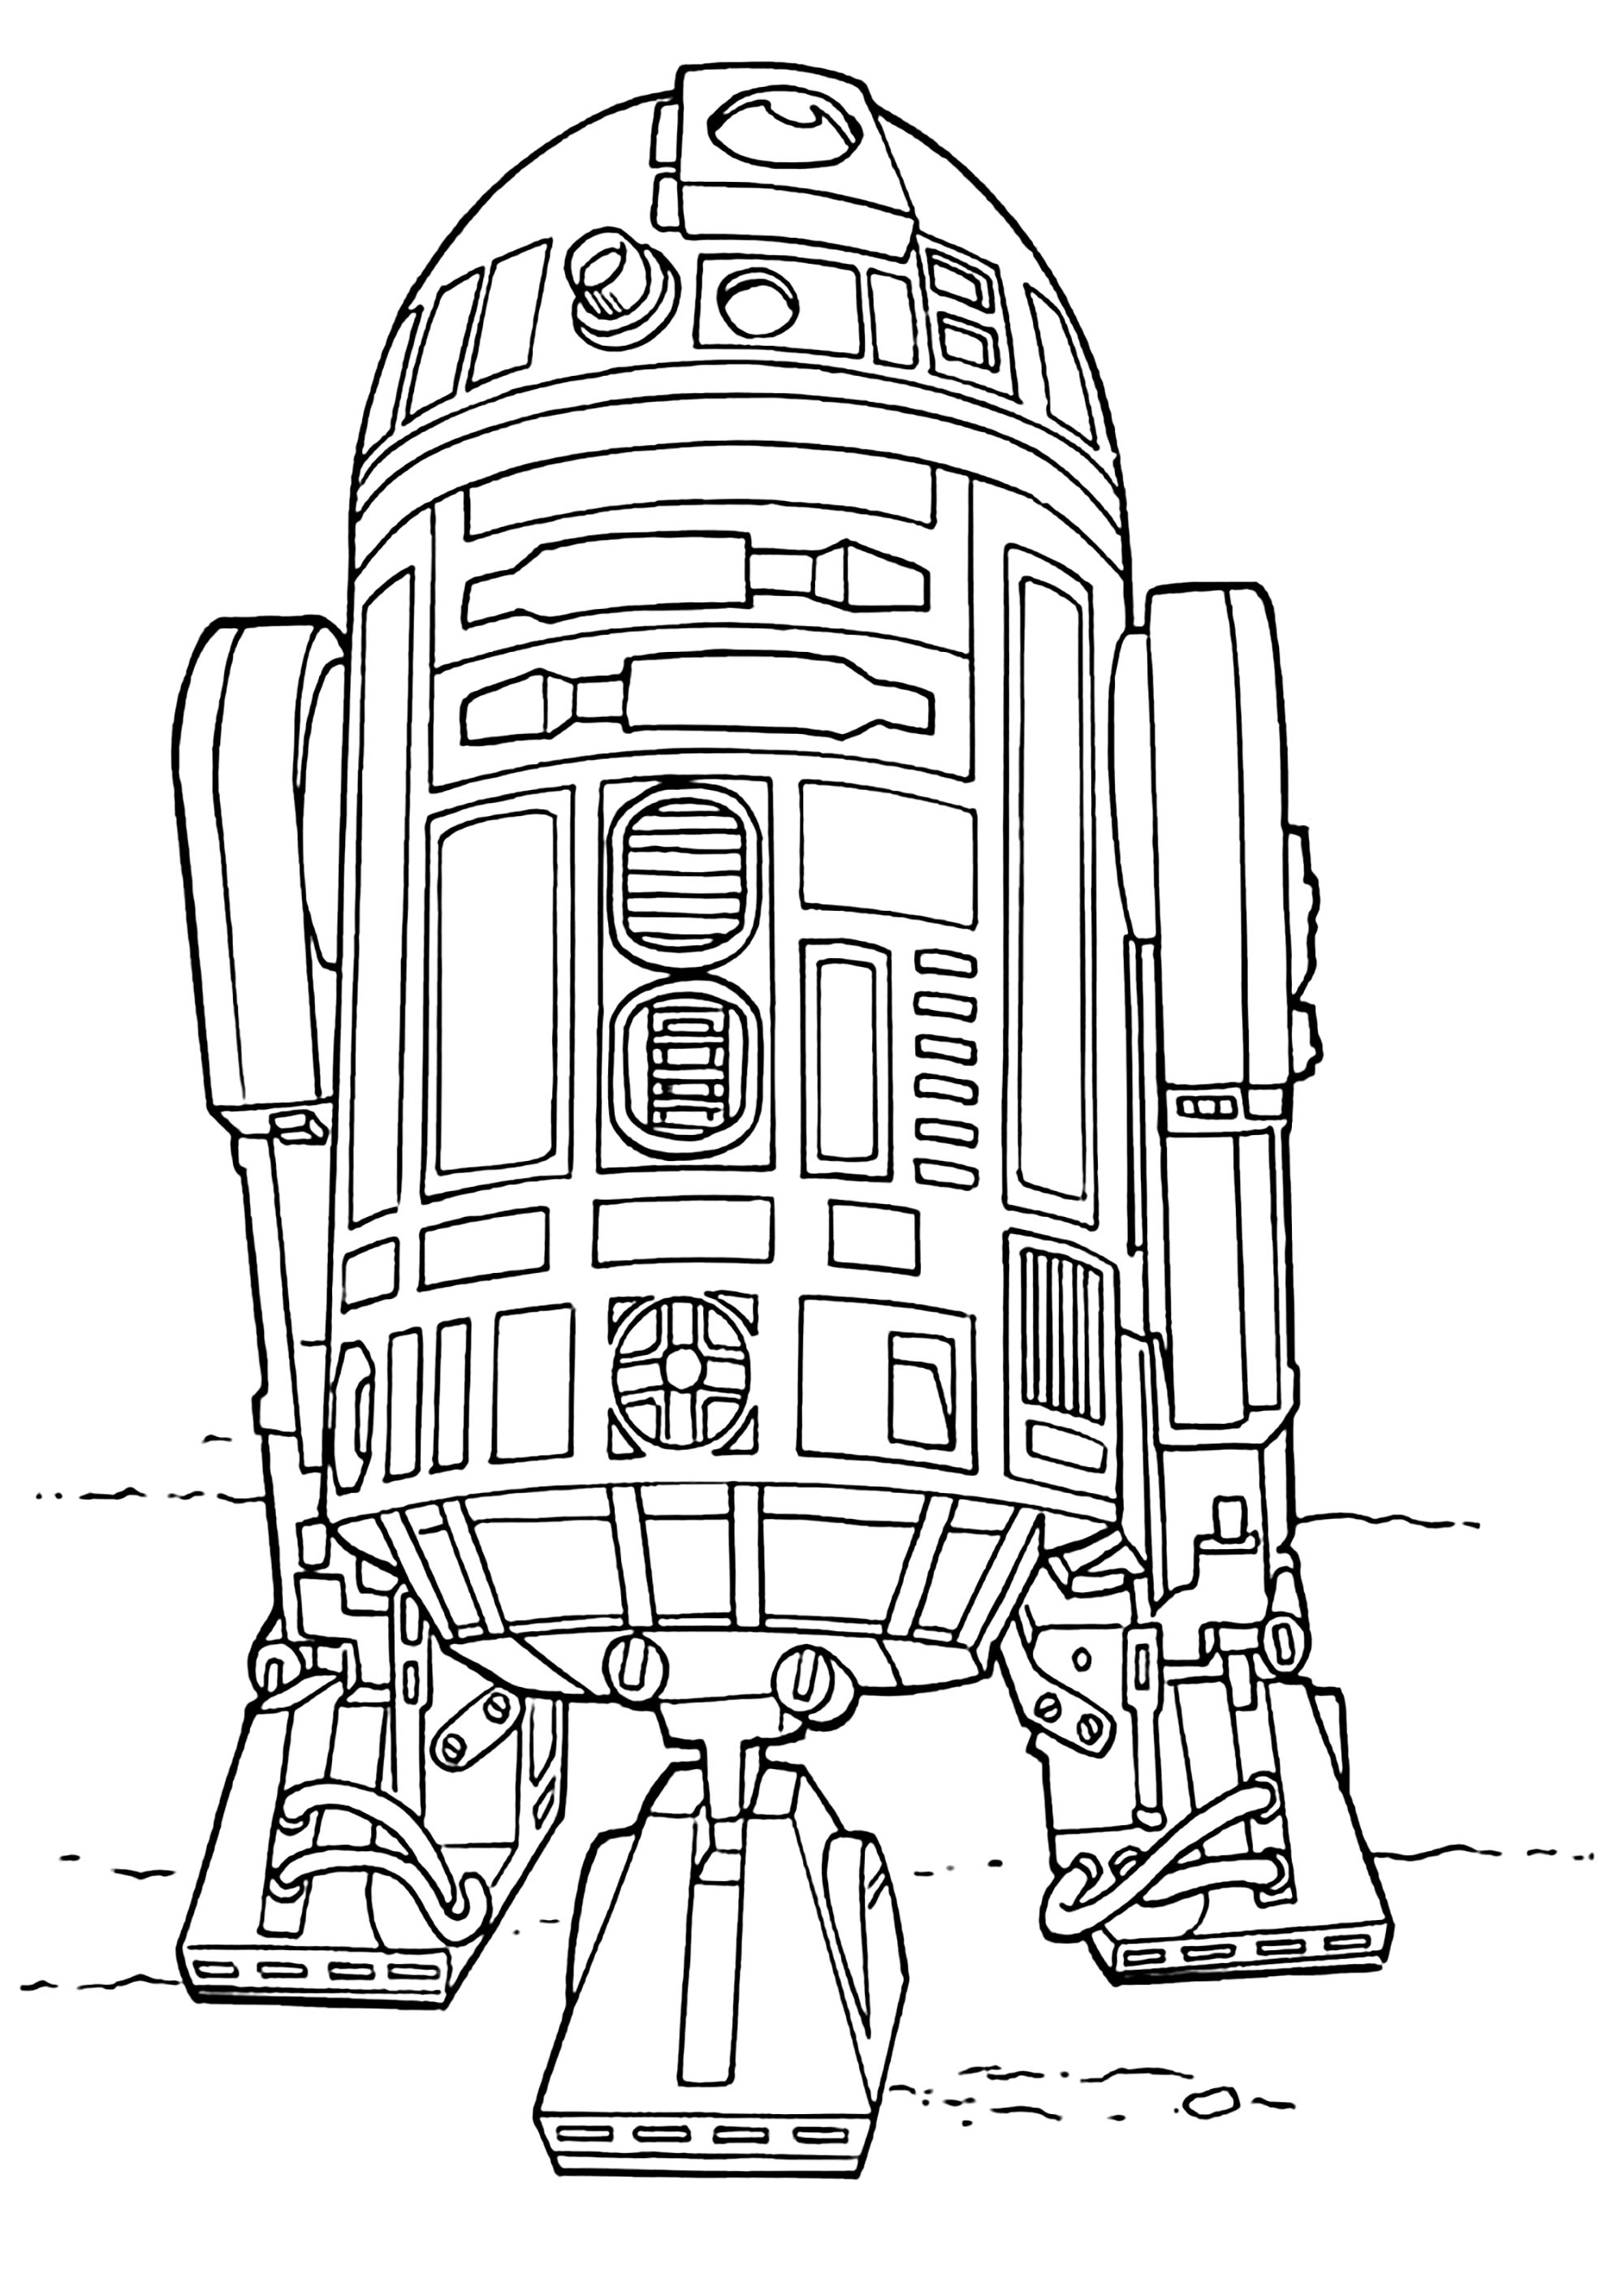 star wars coloring pages to print star wars to color for kids star wars kids coloring pages coloring print wars pages to star